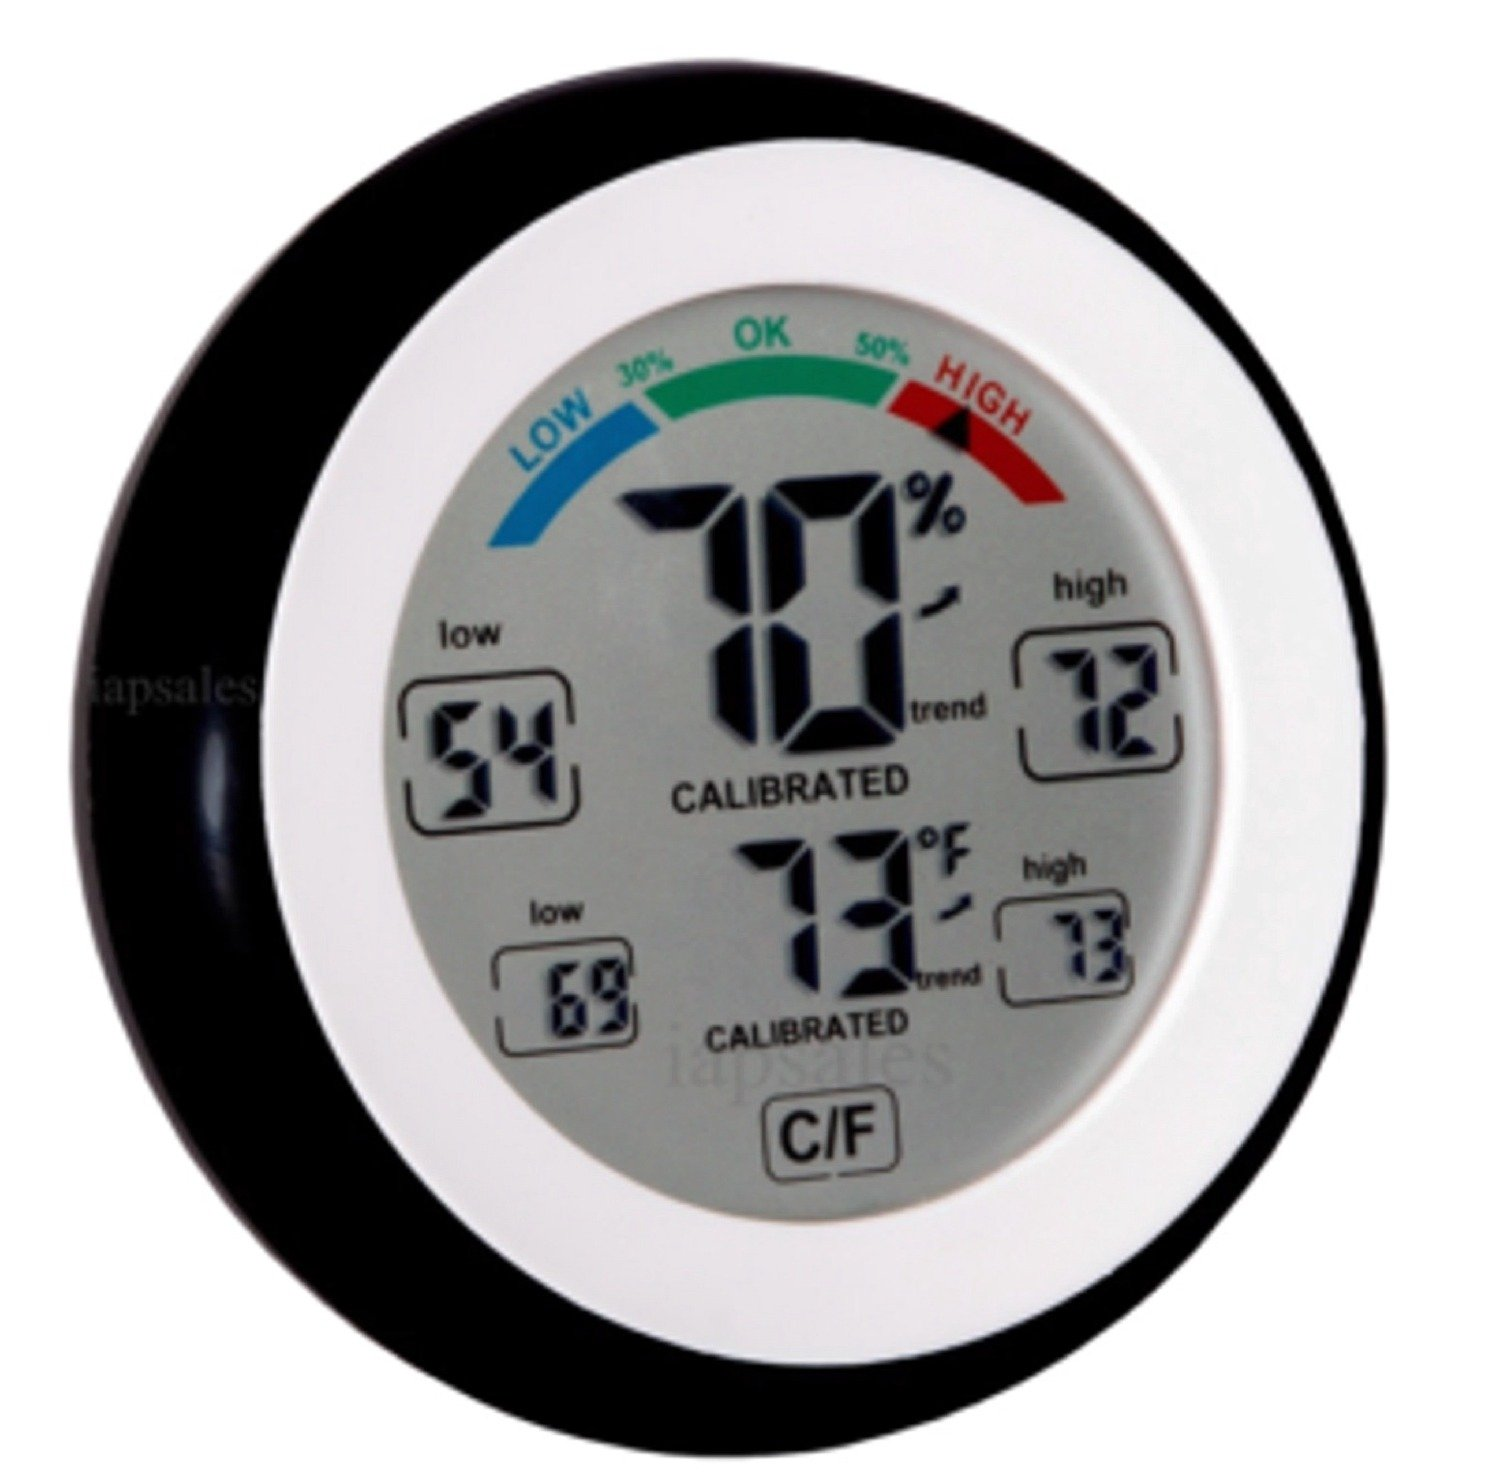 iapsales Pro Series High End Humidity Monitor& Temperature Gauge, Easy to Read: Simple Accurate Meter with Max/Min History Perfect for Your Home Baby/Nursery/Kids Room, Basement, Wine Room or Car by iapsales